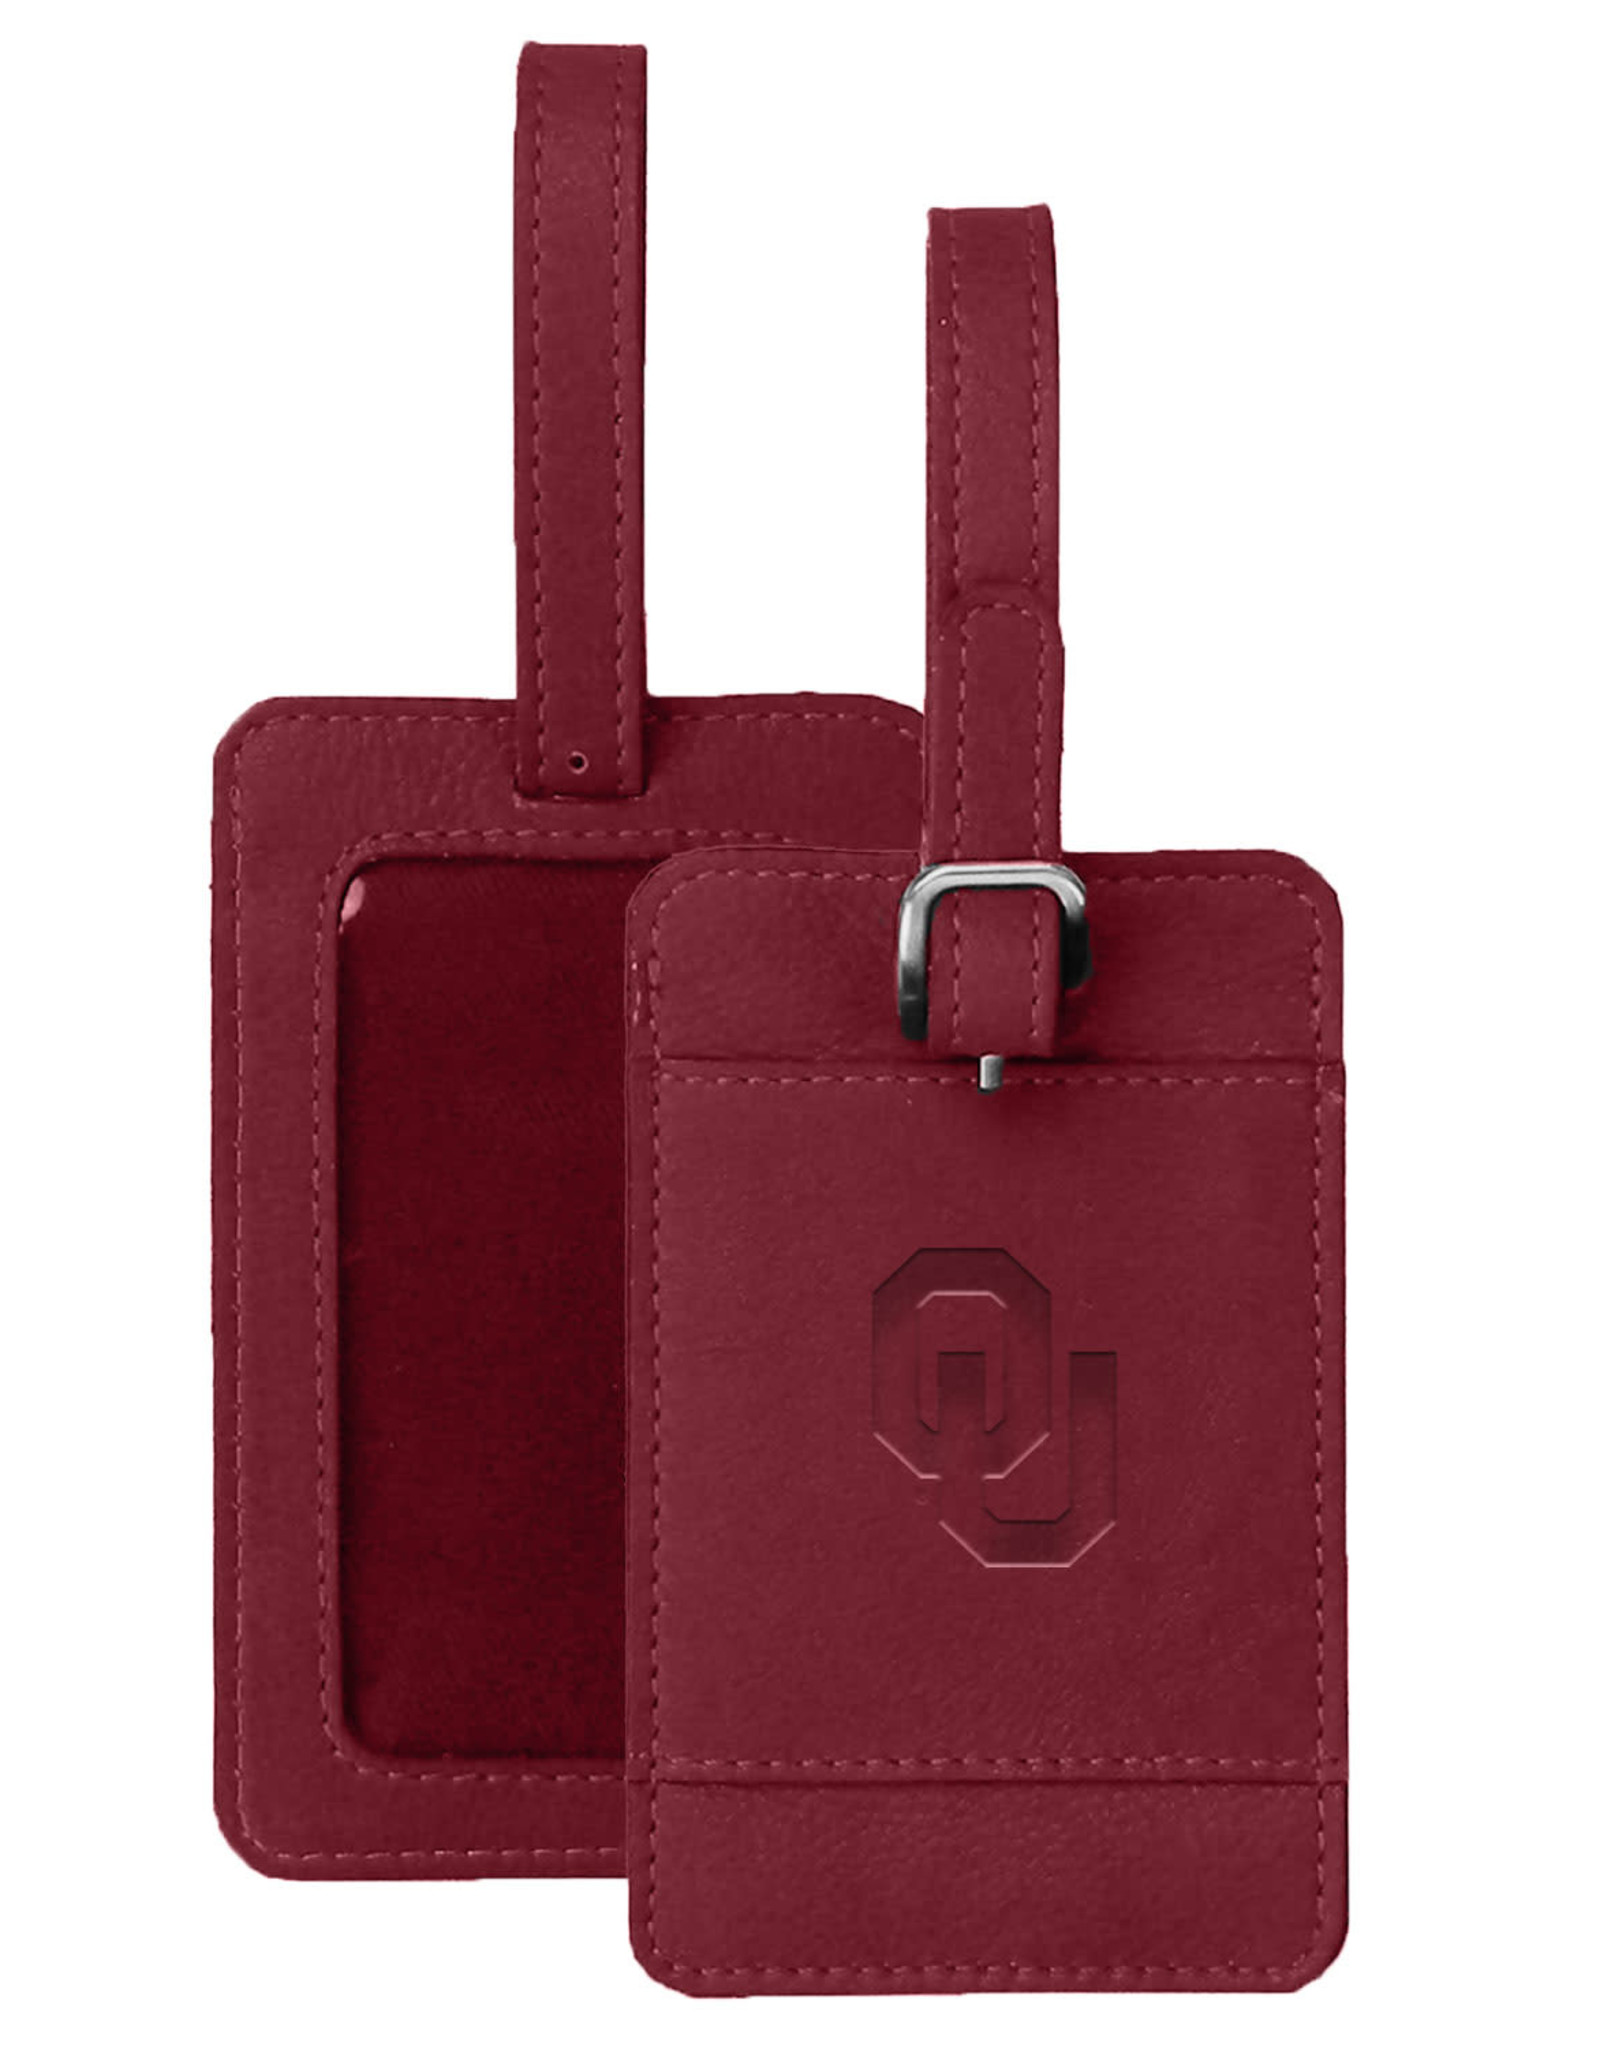 MCM Brands MCM OU Leather Luggage Tag Dk. Red